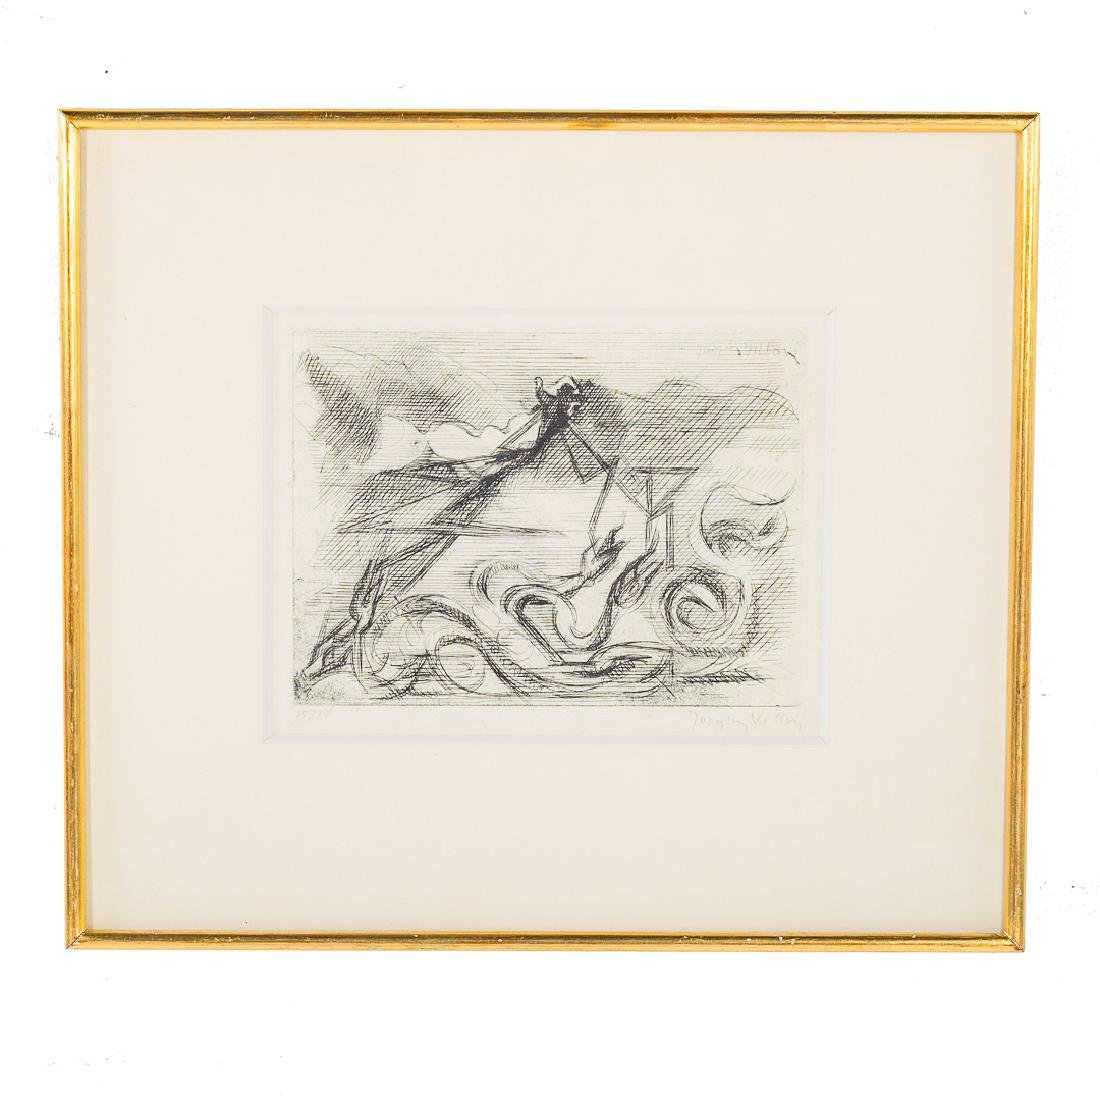 Jacques Villon. Untitled, etching